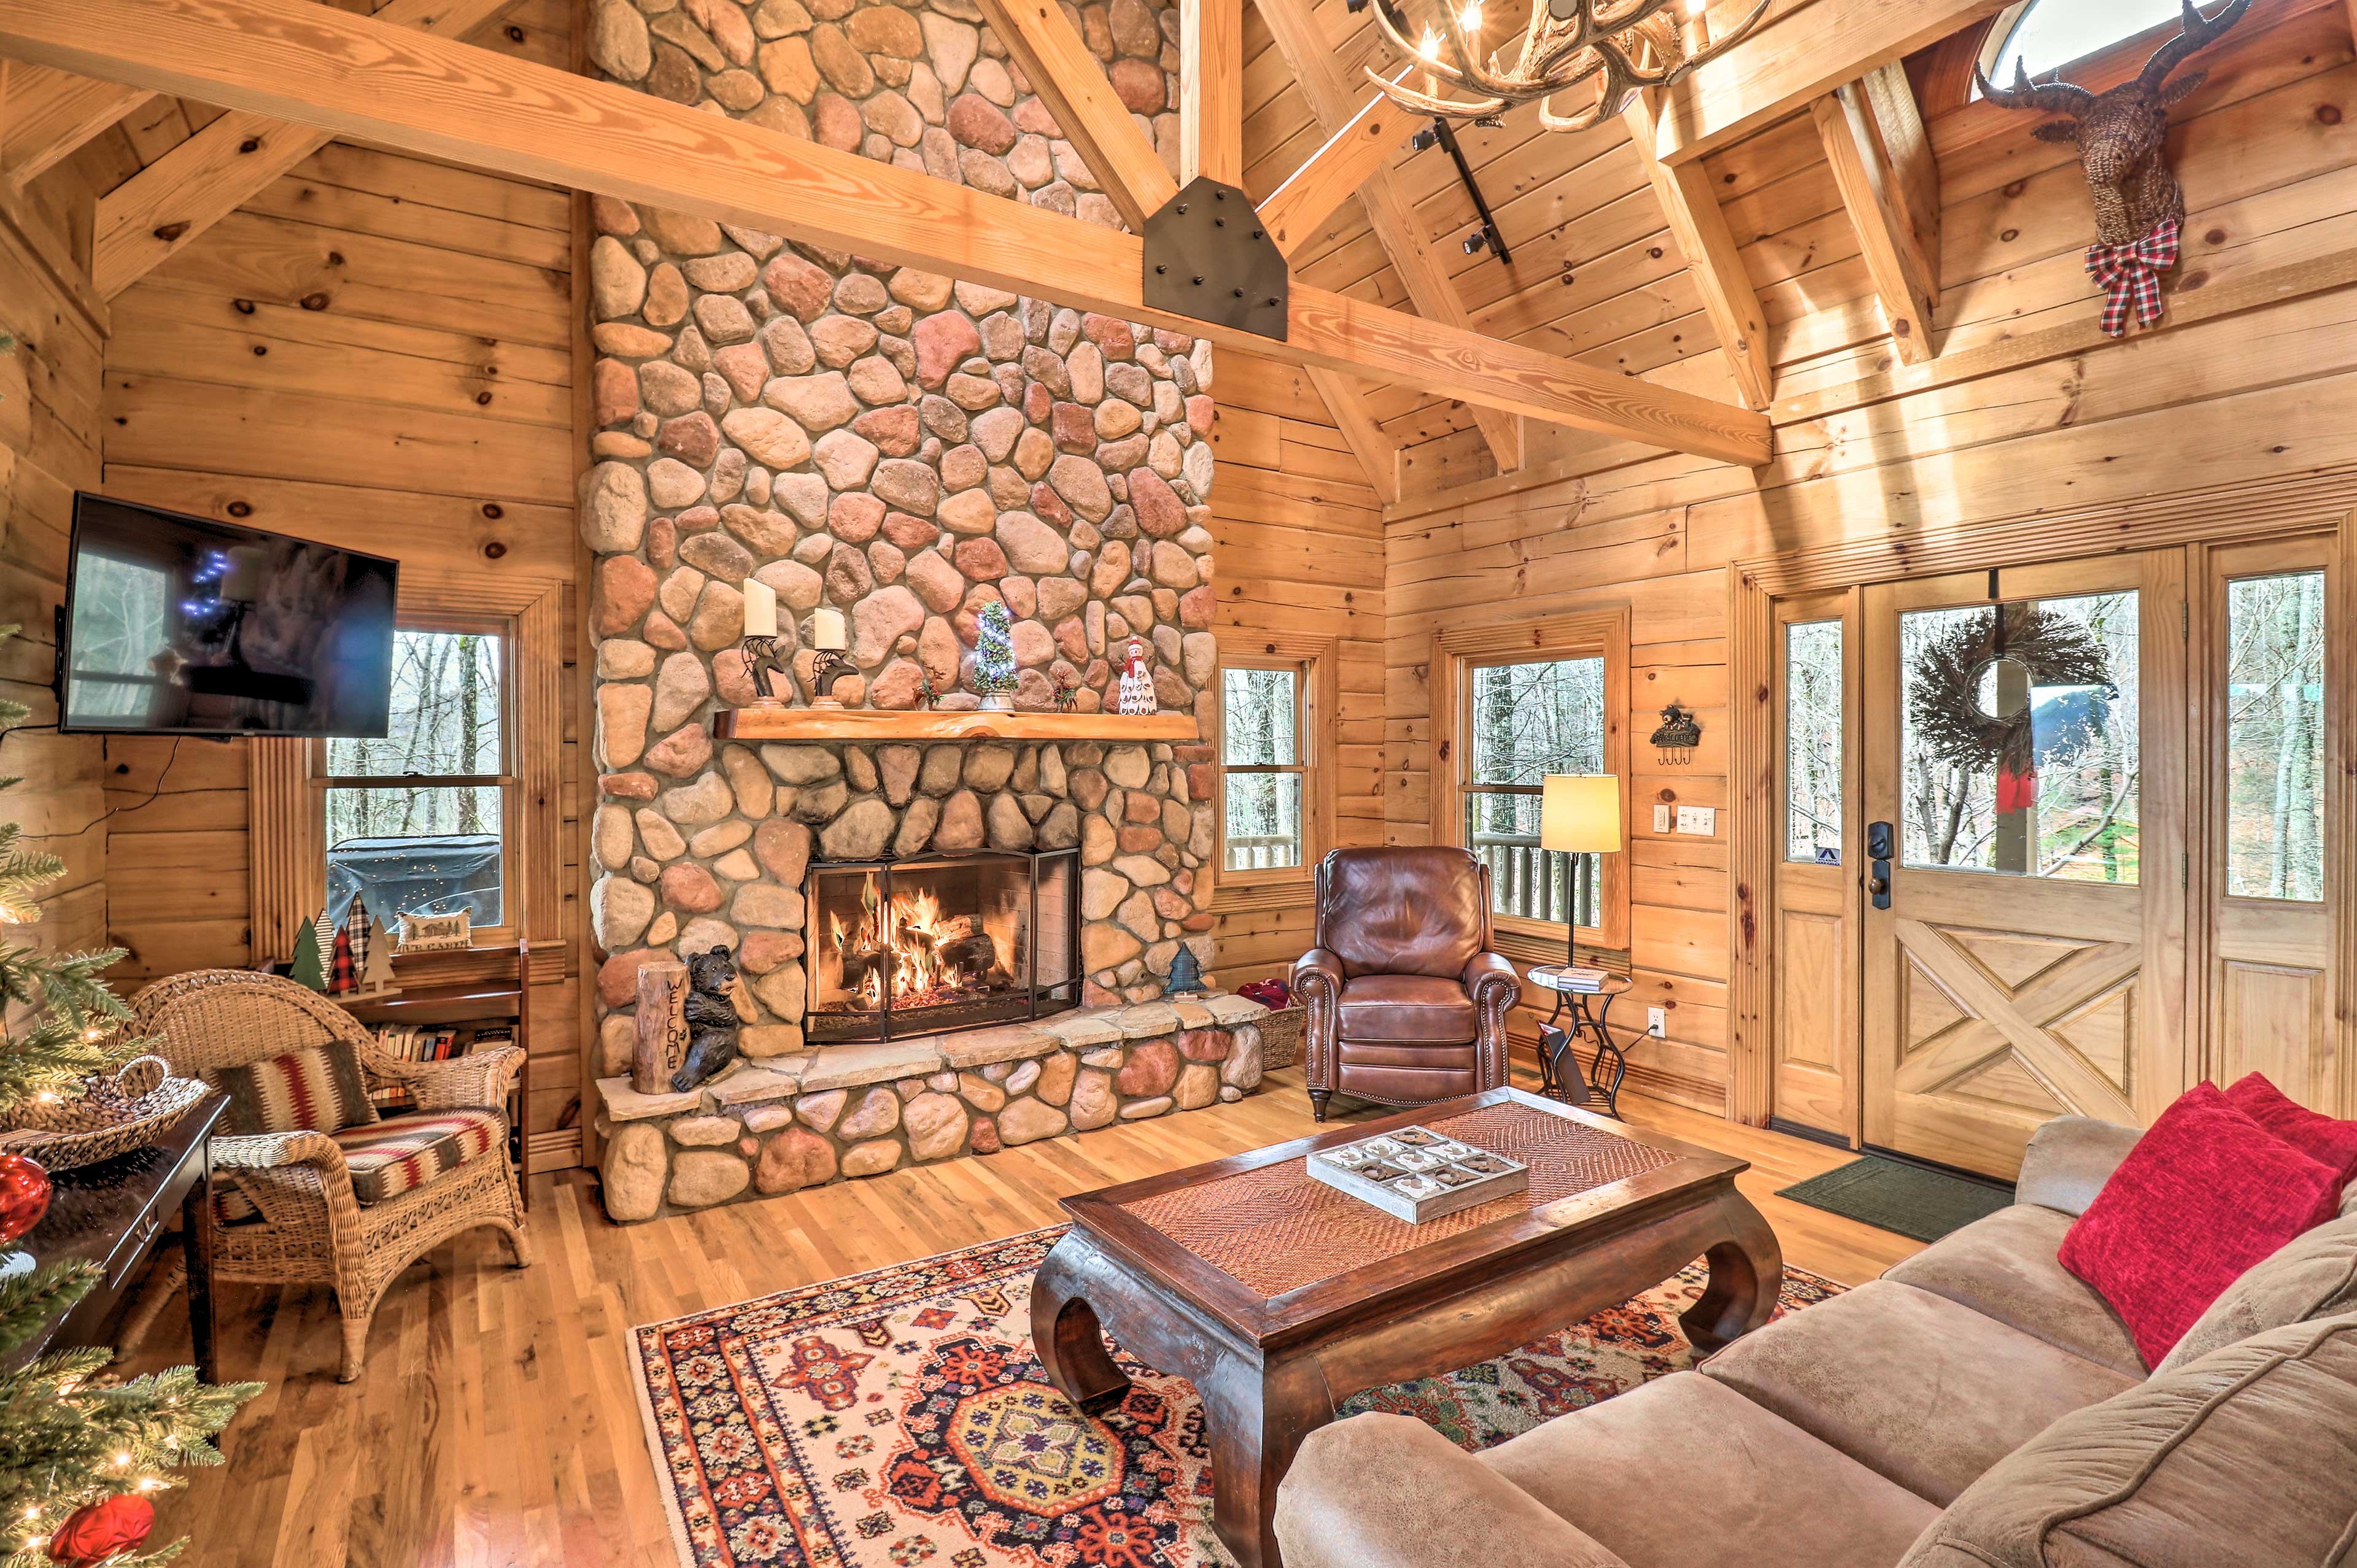 Living Room | Gas Fireplace | Exposed Wood Beams